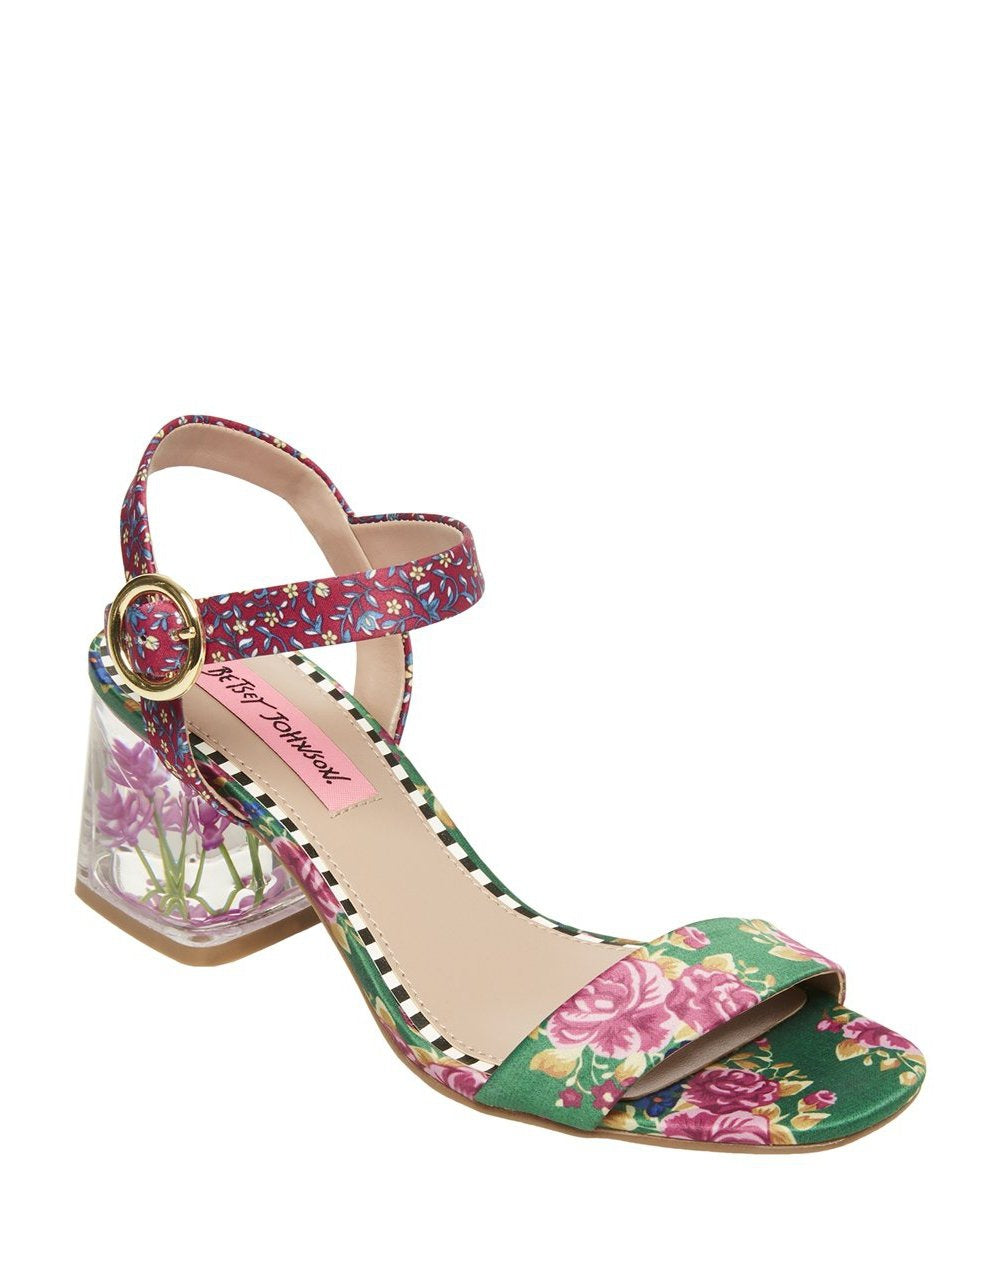 LIVVIE MAGENTA - SHOES - Betsey Johnson